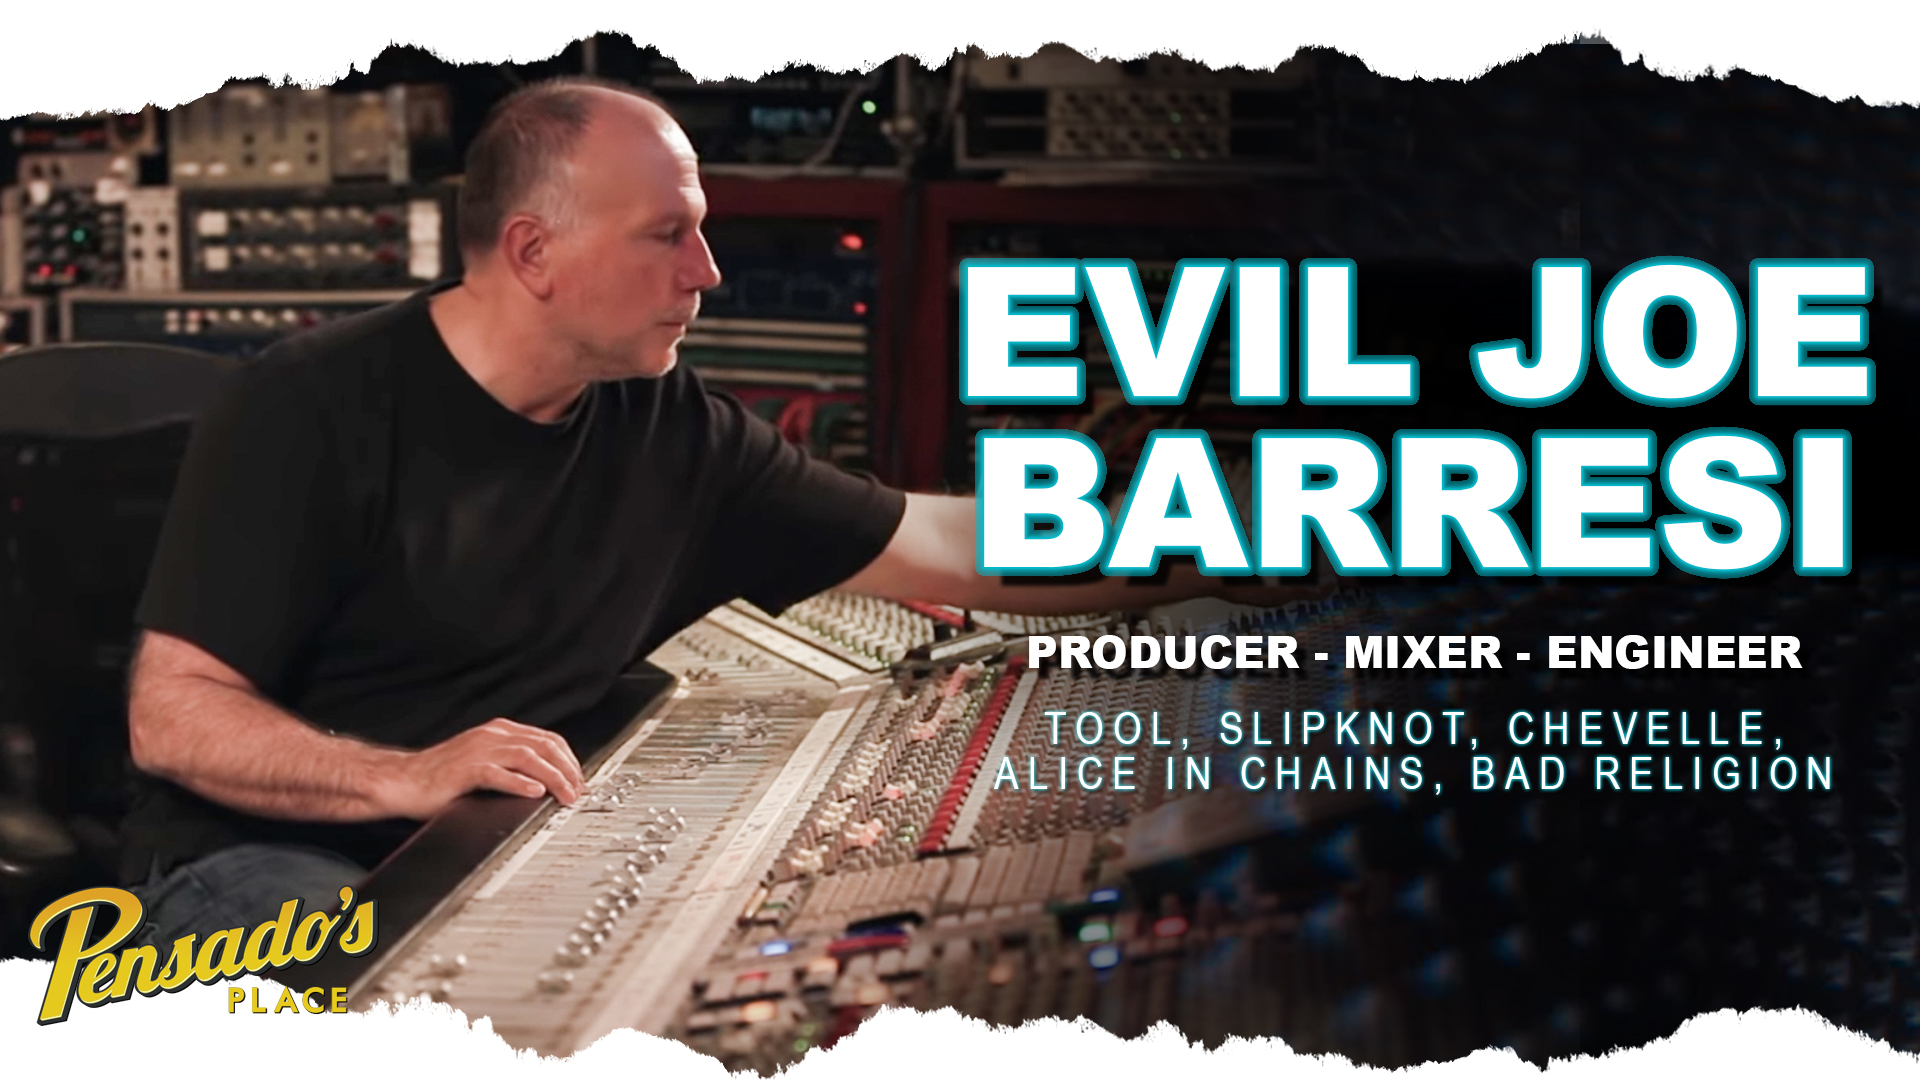 Producer / Mixer / Engineer, Joe Barresi (Tool, Slipknot, Alice in Chains) PART 1